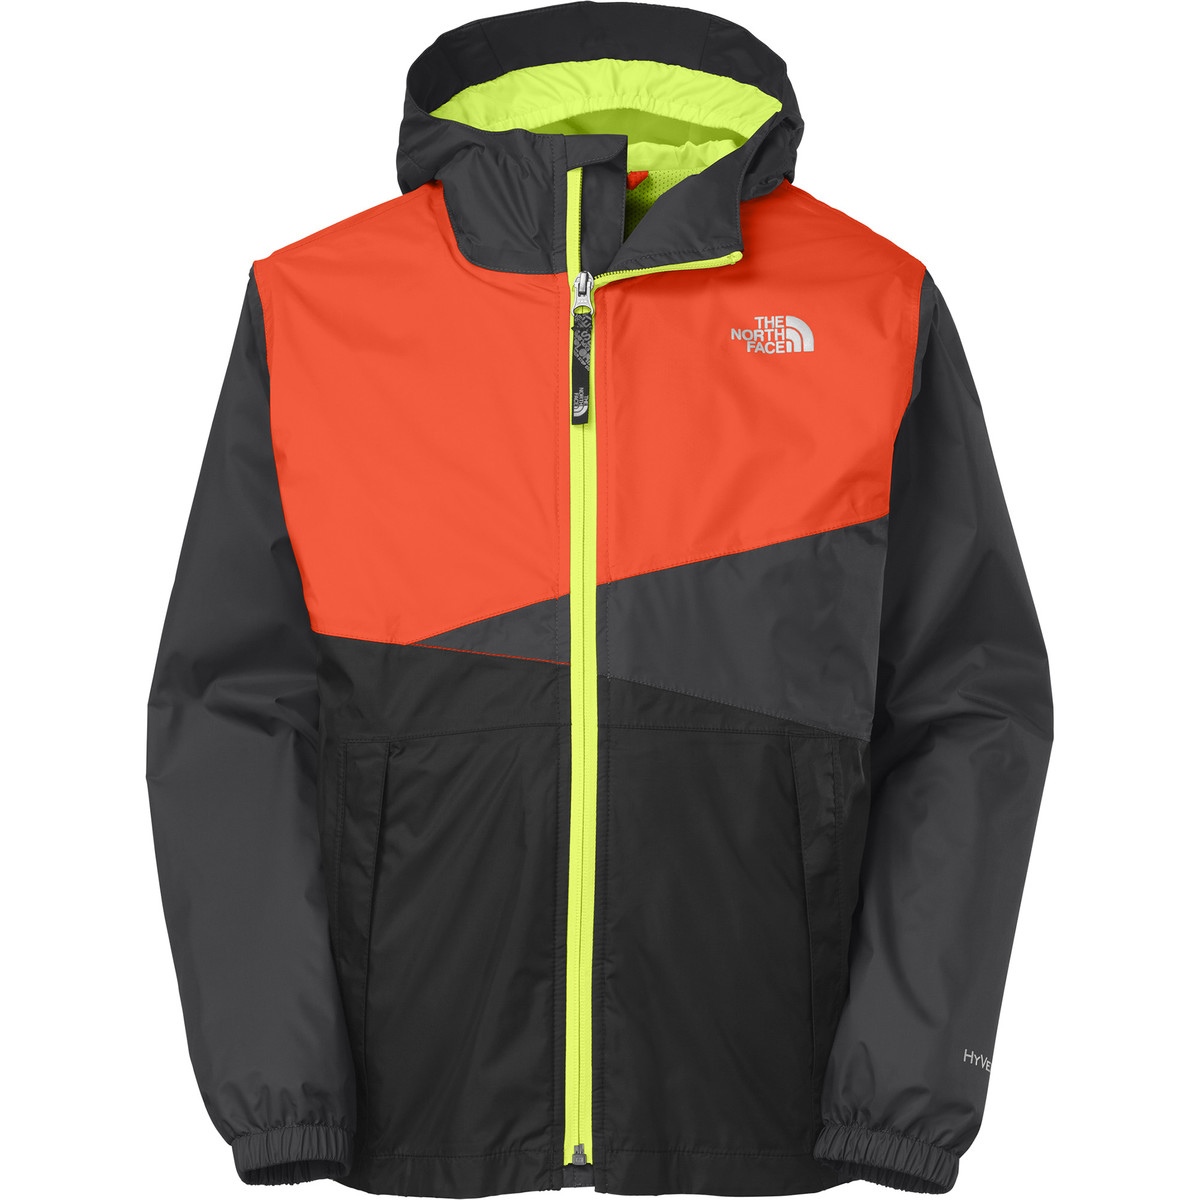 The North Face Tavoy Lined Rain Jacket